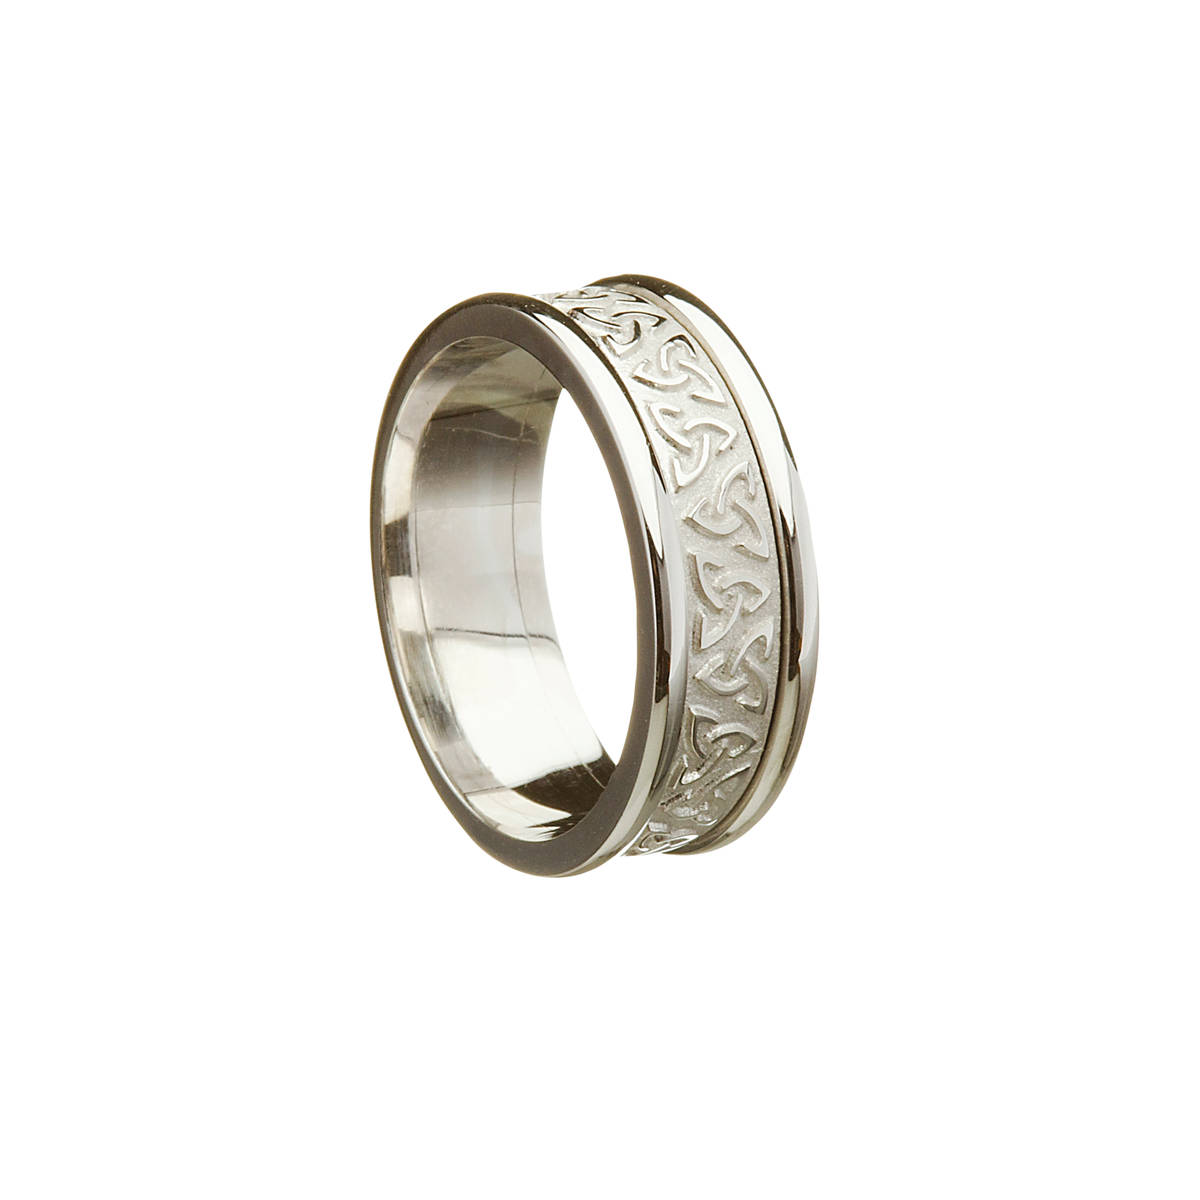 14 carat white gold raised trinity knot wedding band with heavy white rims. 8.1mm